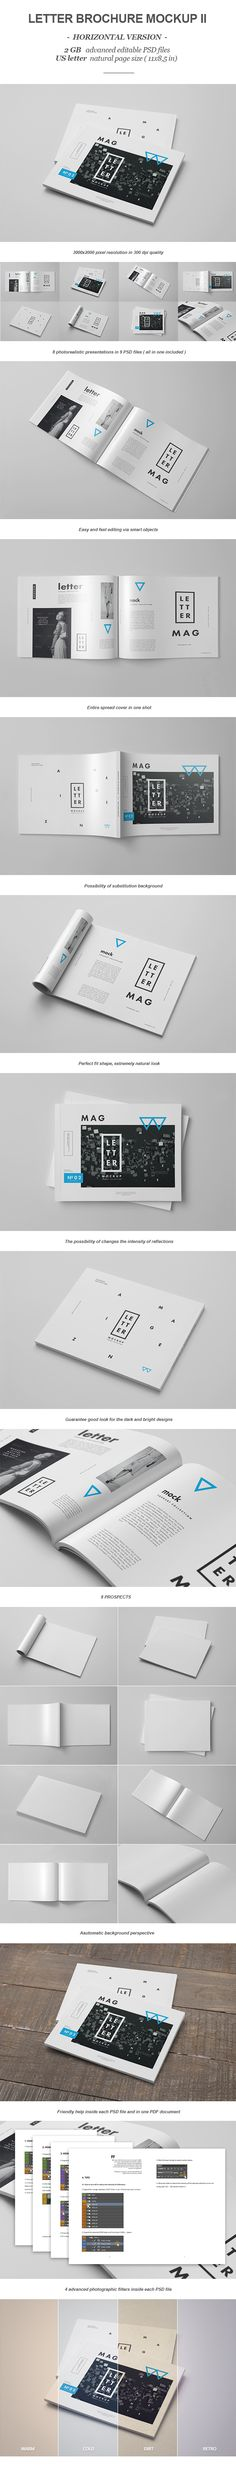 Horizontal Letter Magazine / Brochure Mock-up 2 by yogurt86 Design Studio, via Behance